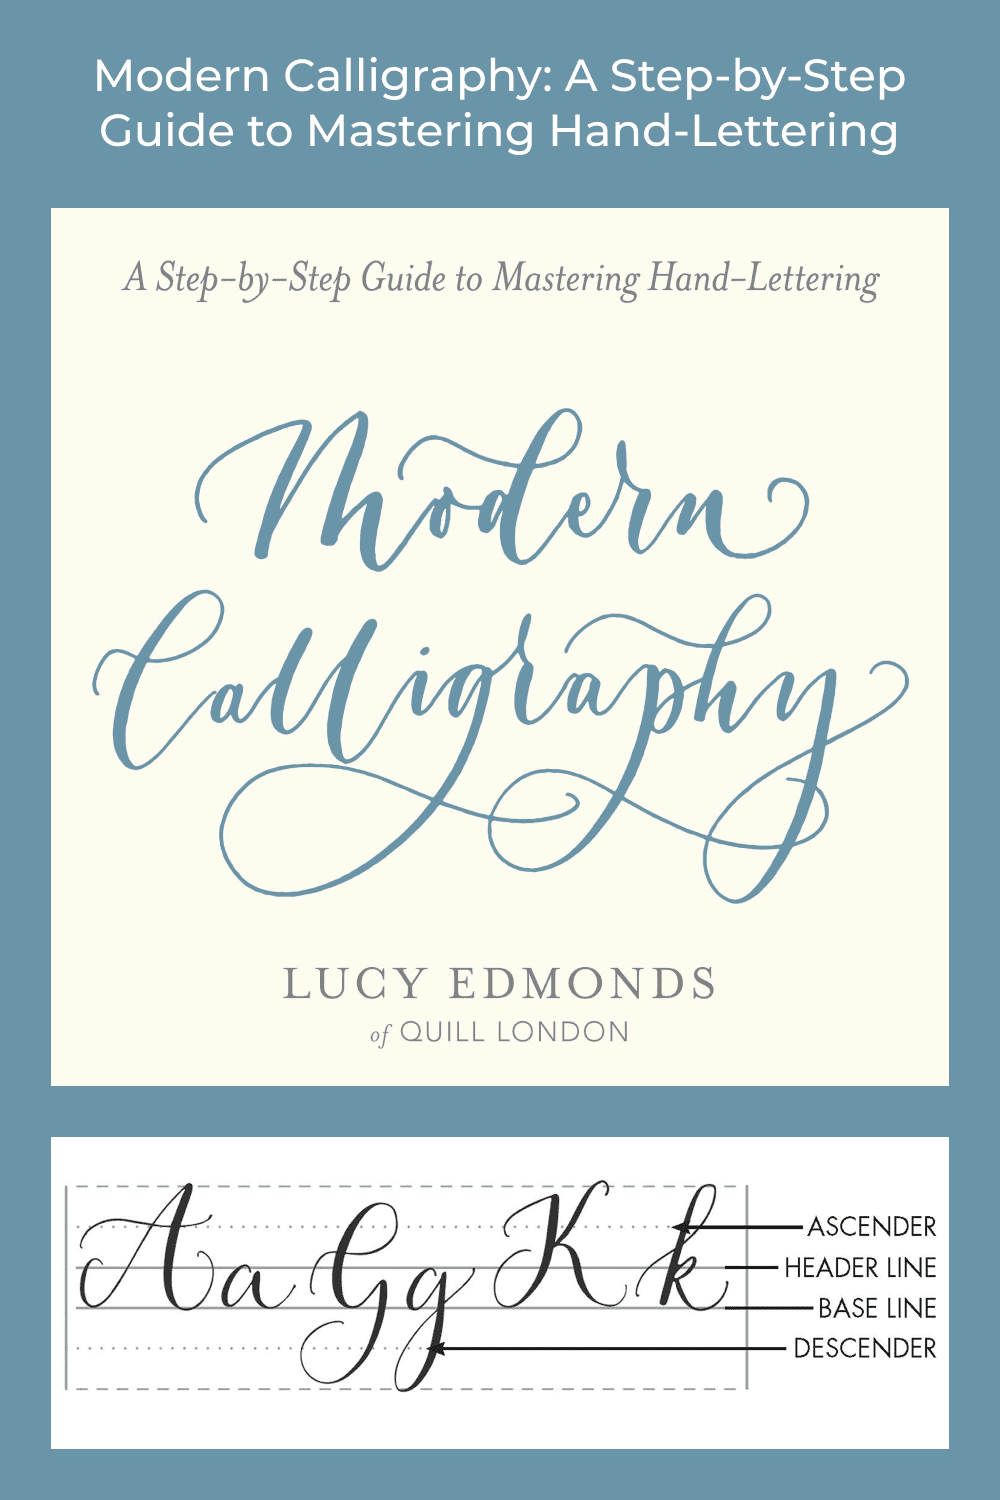 Unlock your creativity with this inspiring guide to modern calligraphy.